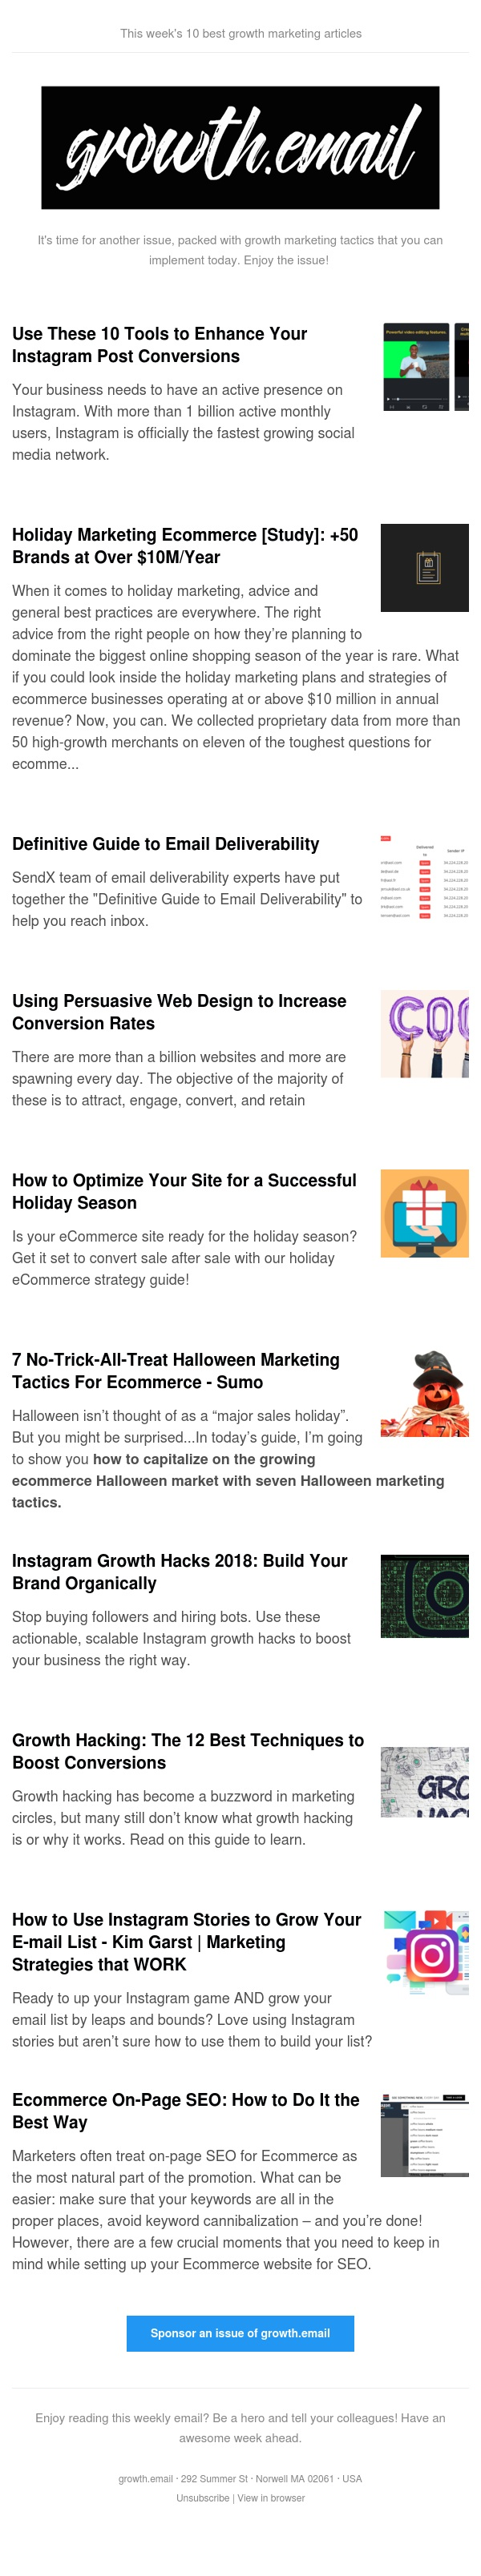 growth.email #82 Instagram Marketing Strategies | Growth Hacking Techniques | Halloween Marketing Tactics For Ecommerce | Persuasive Web Design